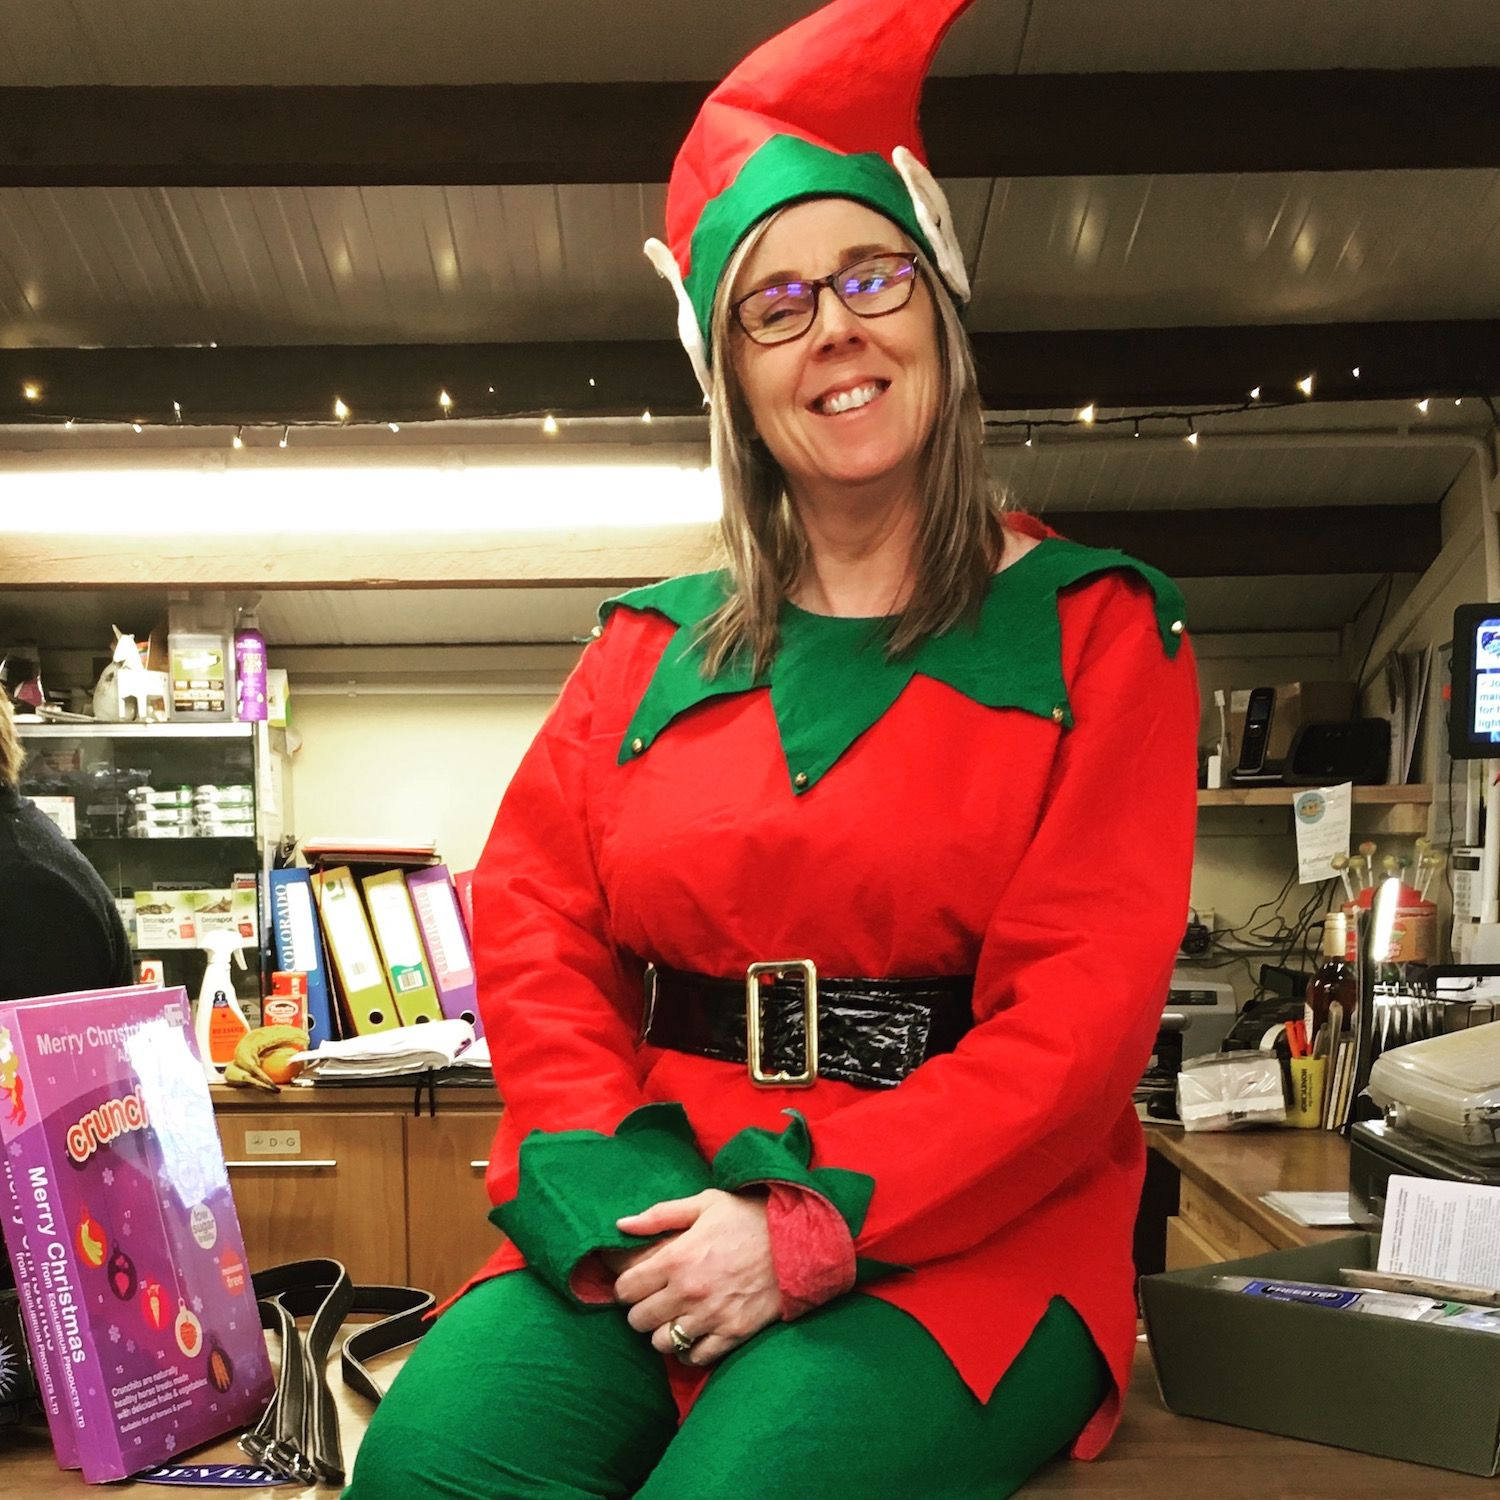 Riseholme's Elf on the Shelf